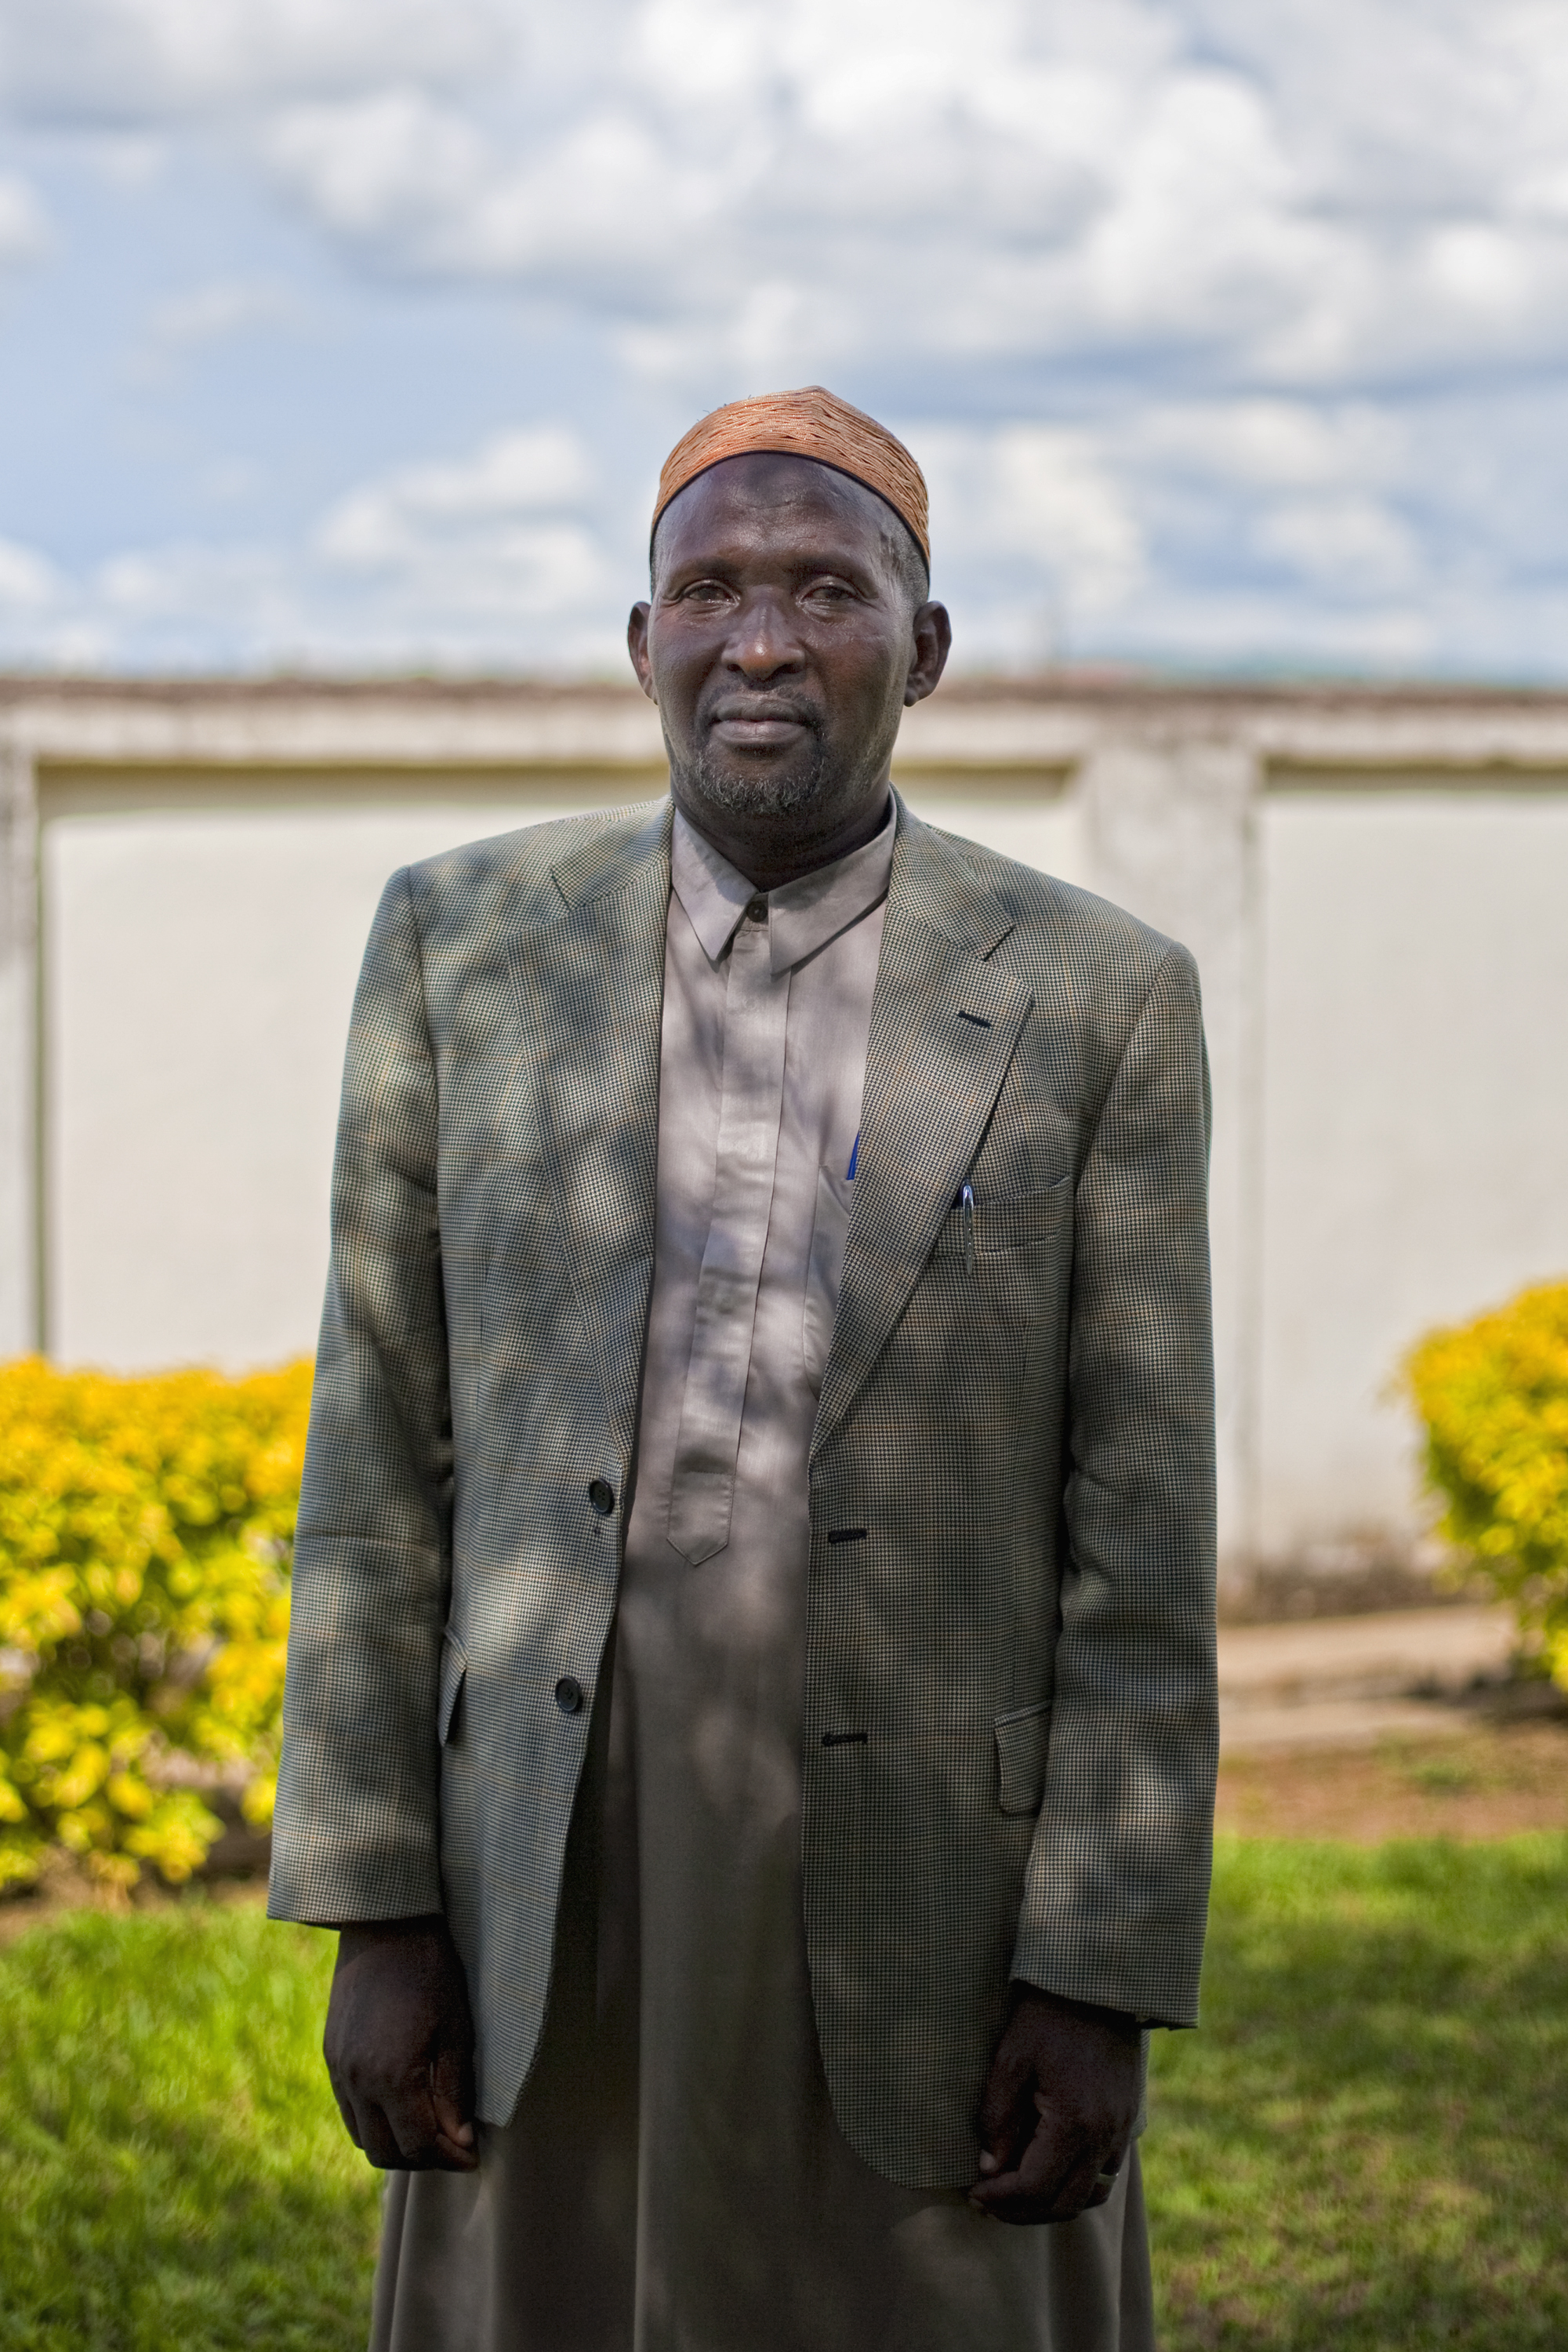 Sheikh Abdul Rahman Said is a Dean for Islamic Culture at the Masjid Quosi Mosque in Kigali/Rwanda. He is teaching Islam since 1989 and is involved in Islamic-Christian community work.